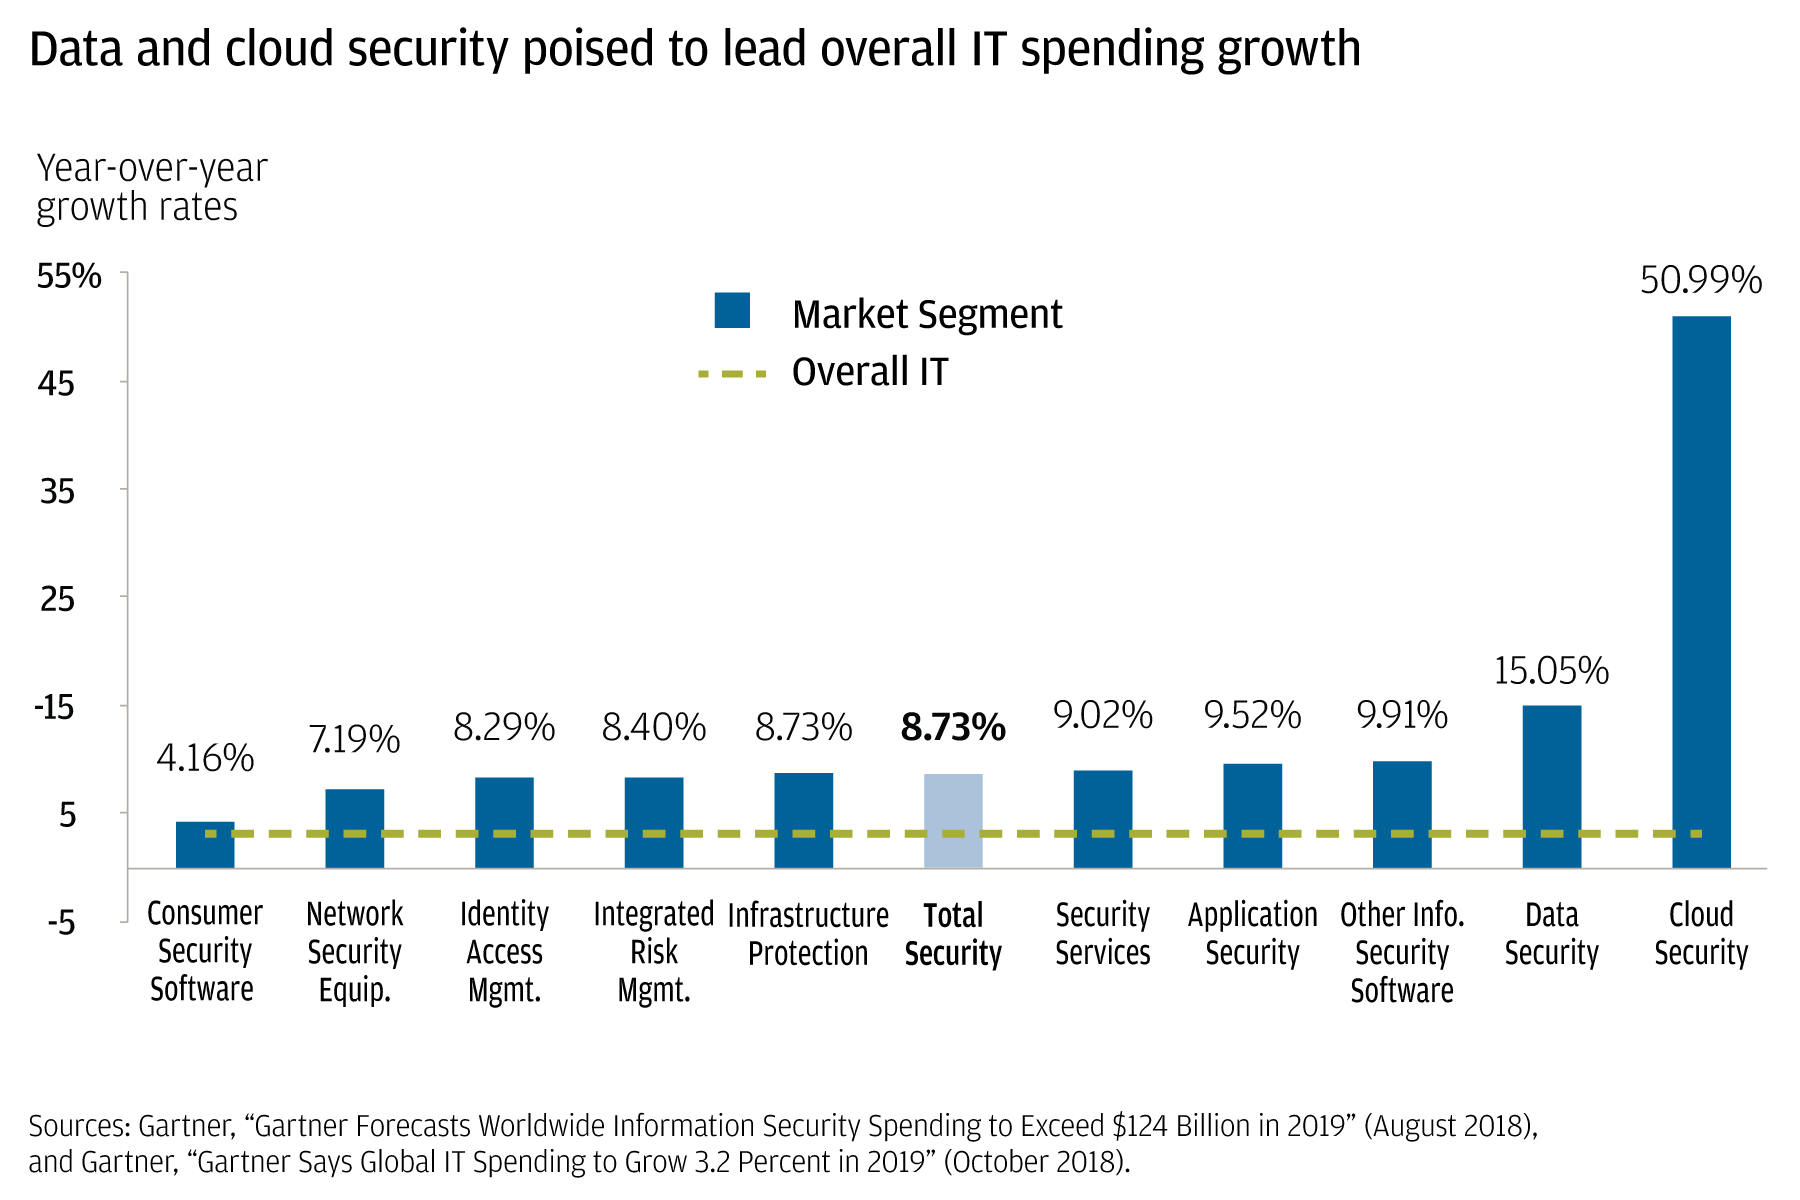 Bar chart showing year-over-year growth rates across consumer security software, network security equipment, identity access management, integrated risk management, infrastructure protection, total security, security services, application security services, application security, other information security software, data security and cloud security. Cloud security towers over the other bars at 50.99%, far above the overall IT growth of ~4%.